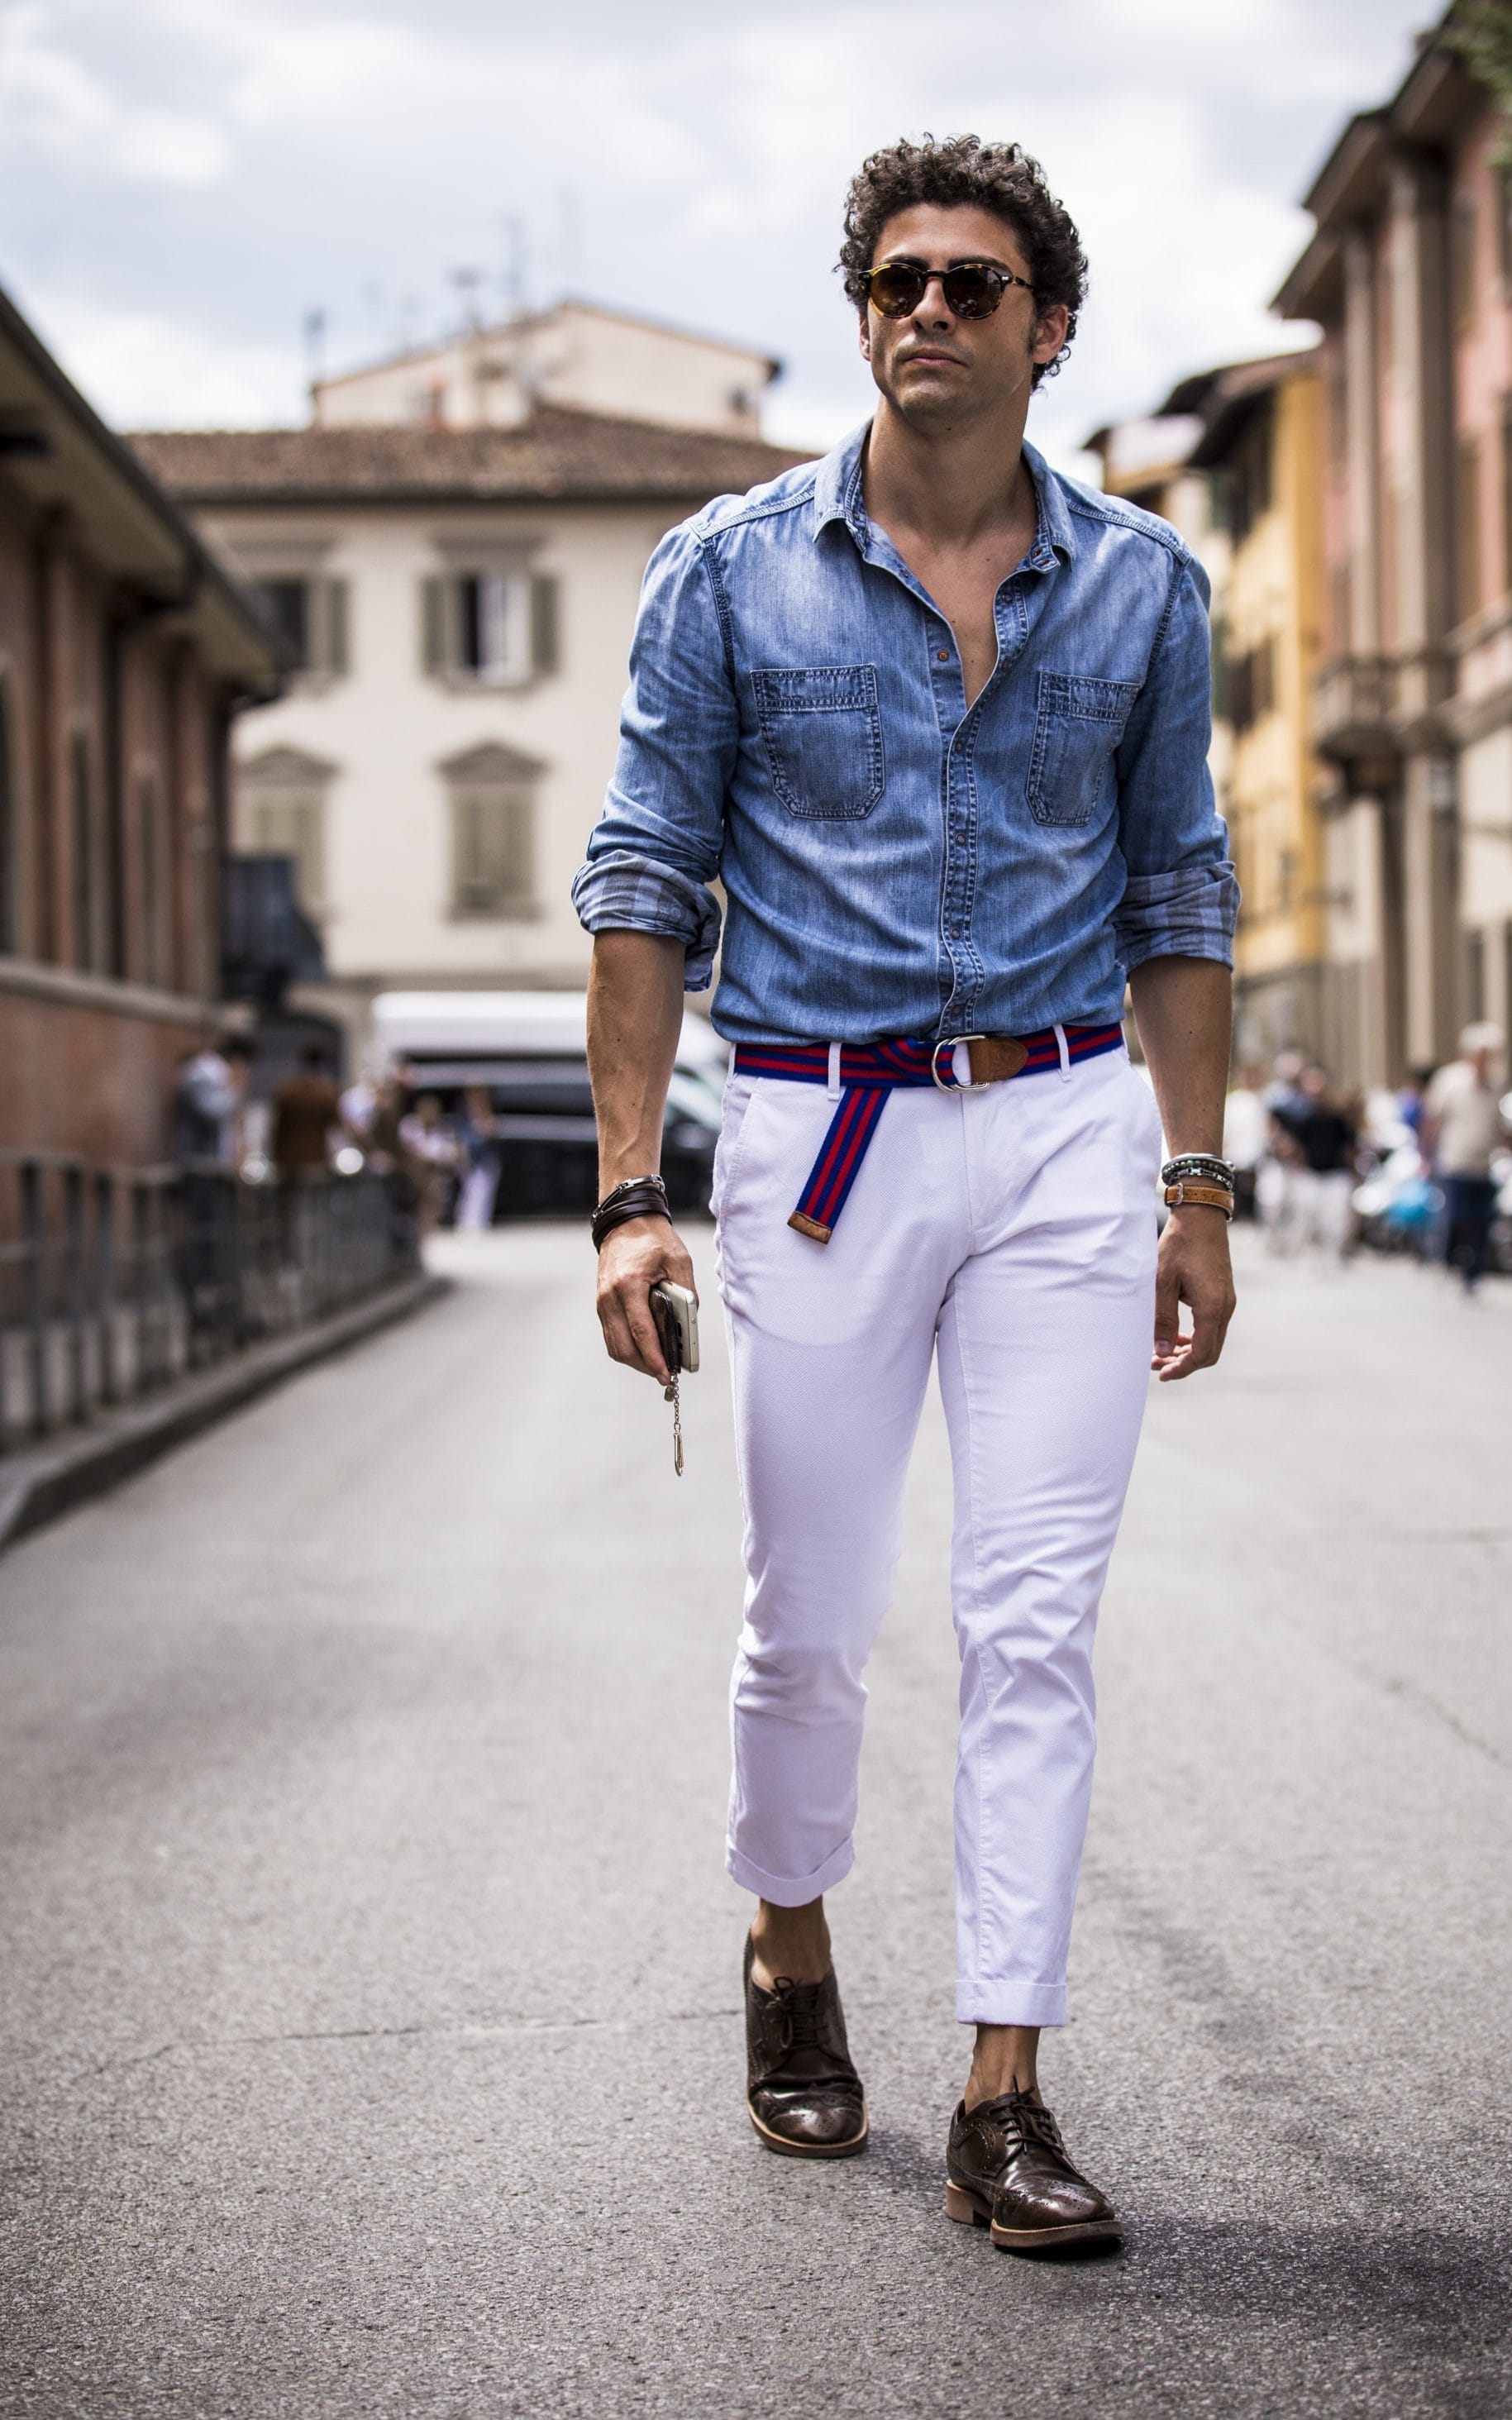 Heatwave style: how to look smart even in sweltering temperatures